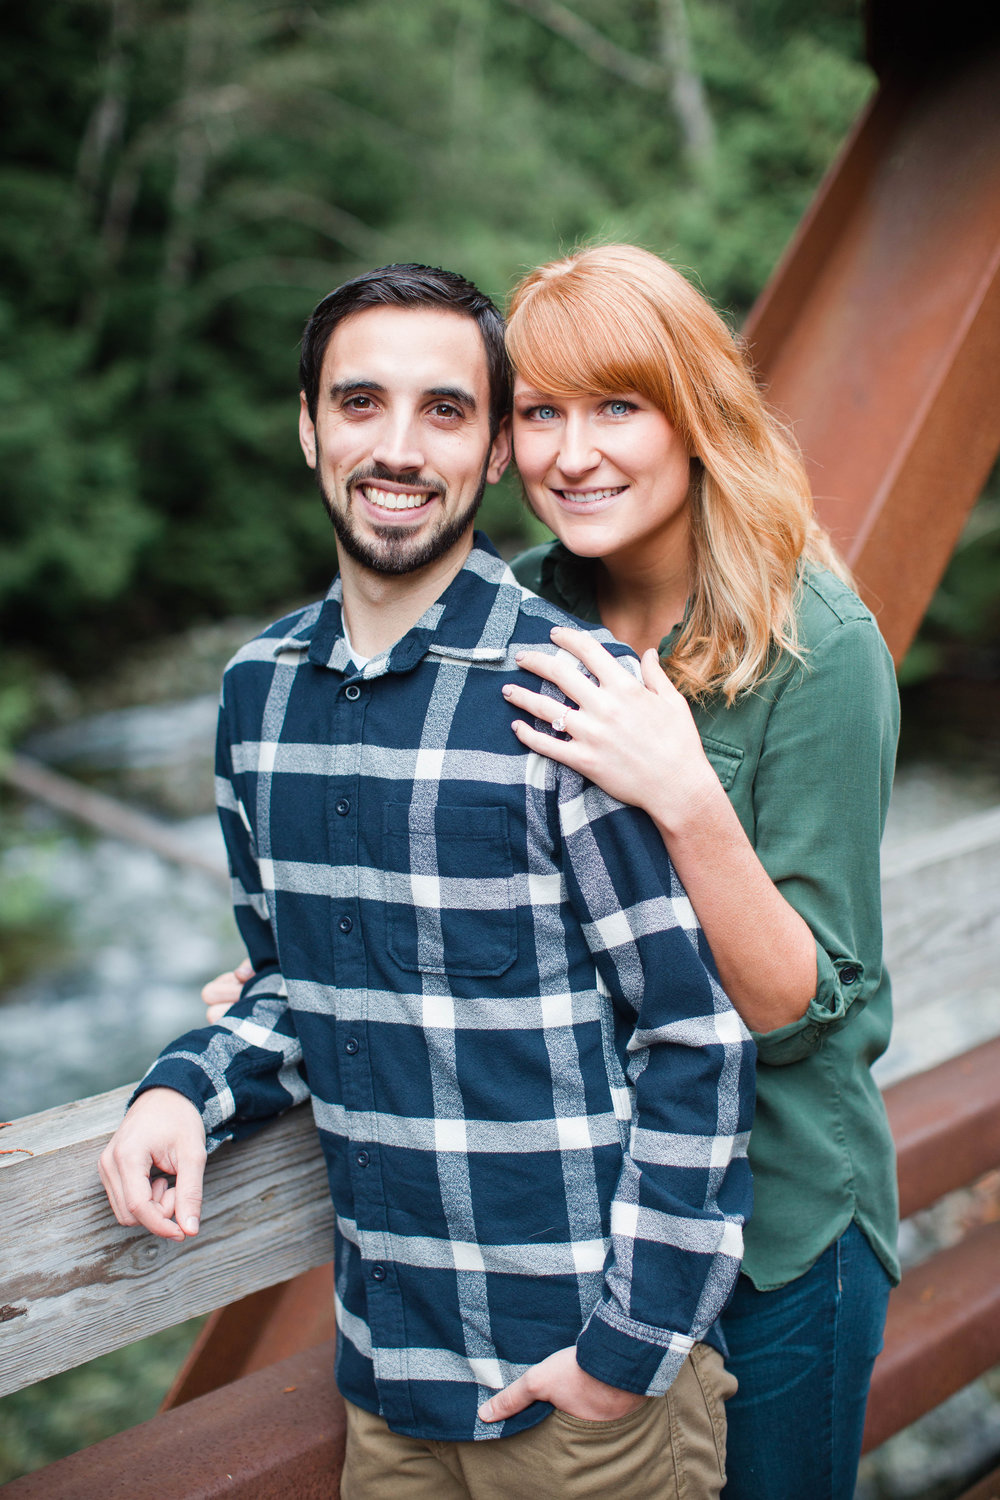 Ryan+Nicole_Franklin+Falls+Engagement_APW2016_9.JPG